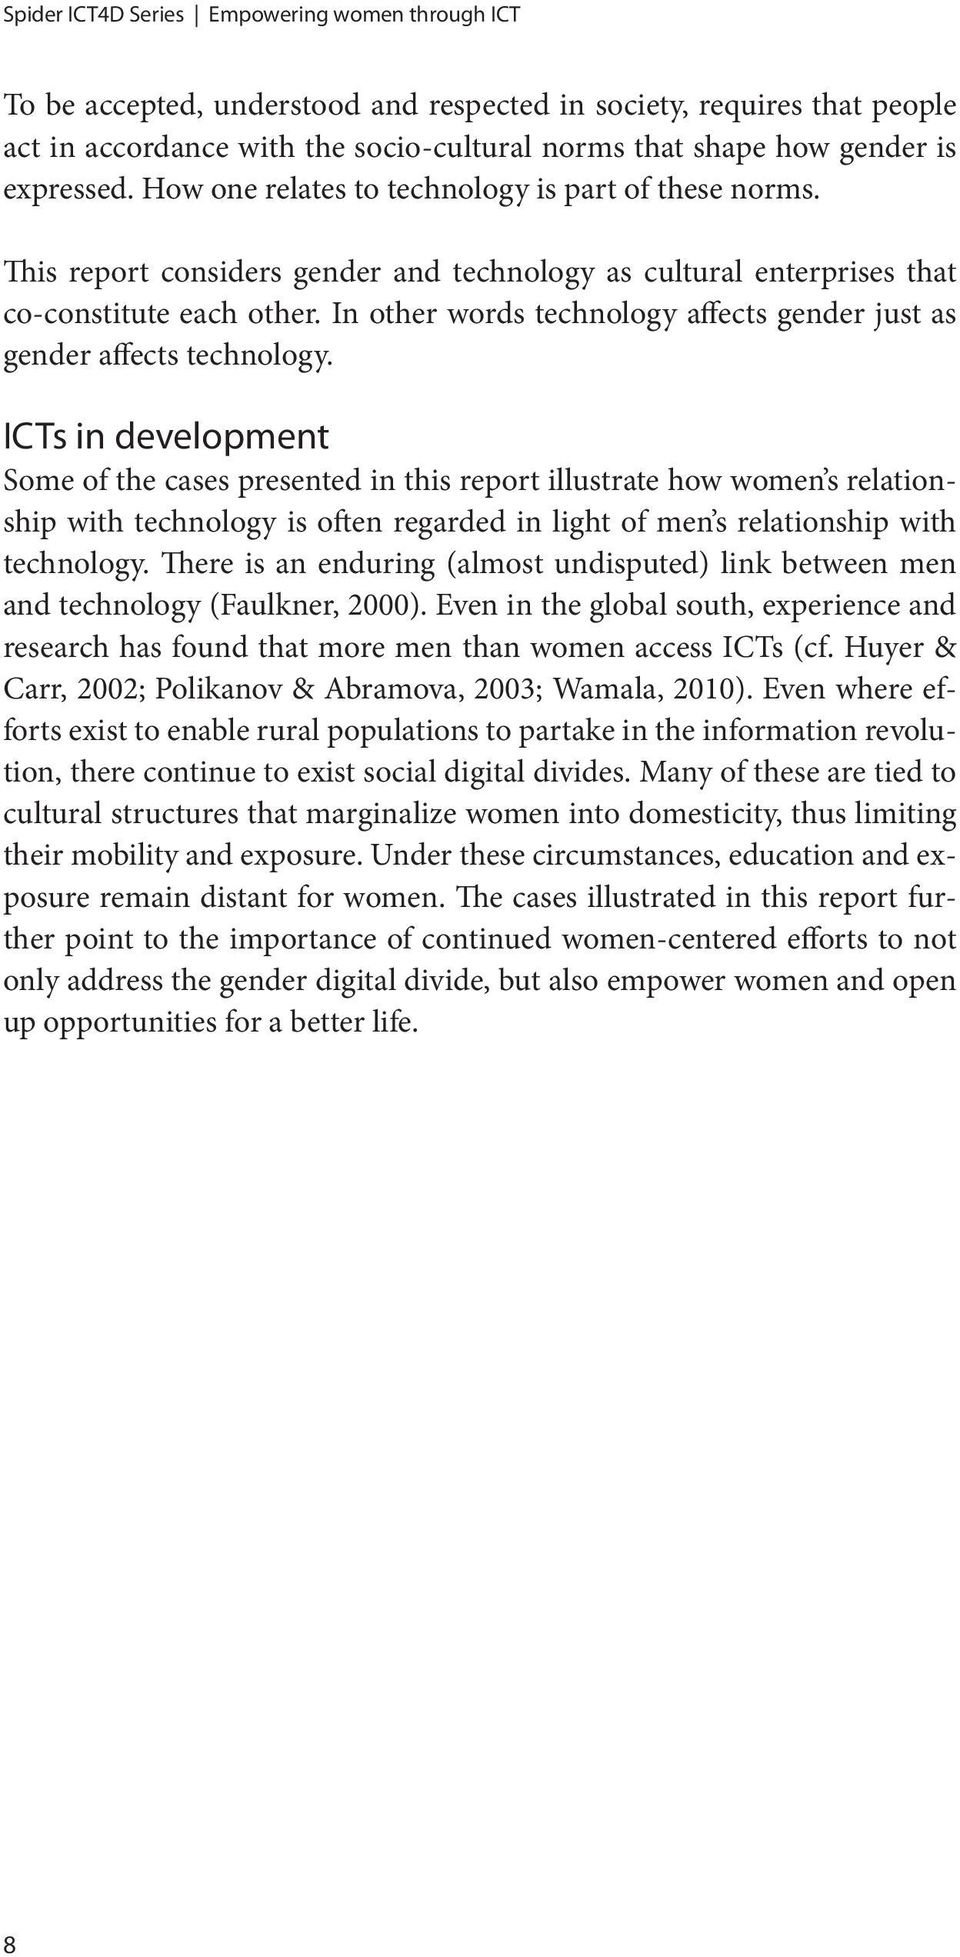 In other words technology affects gender just as gender affects technology.